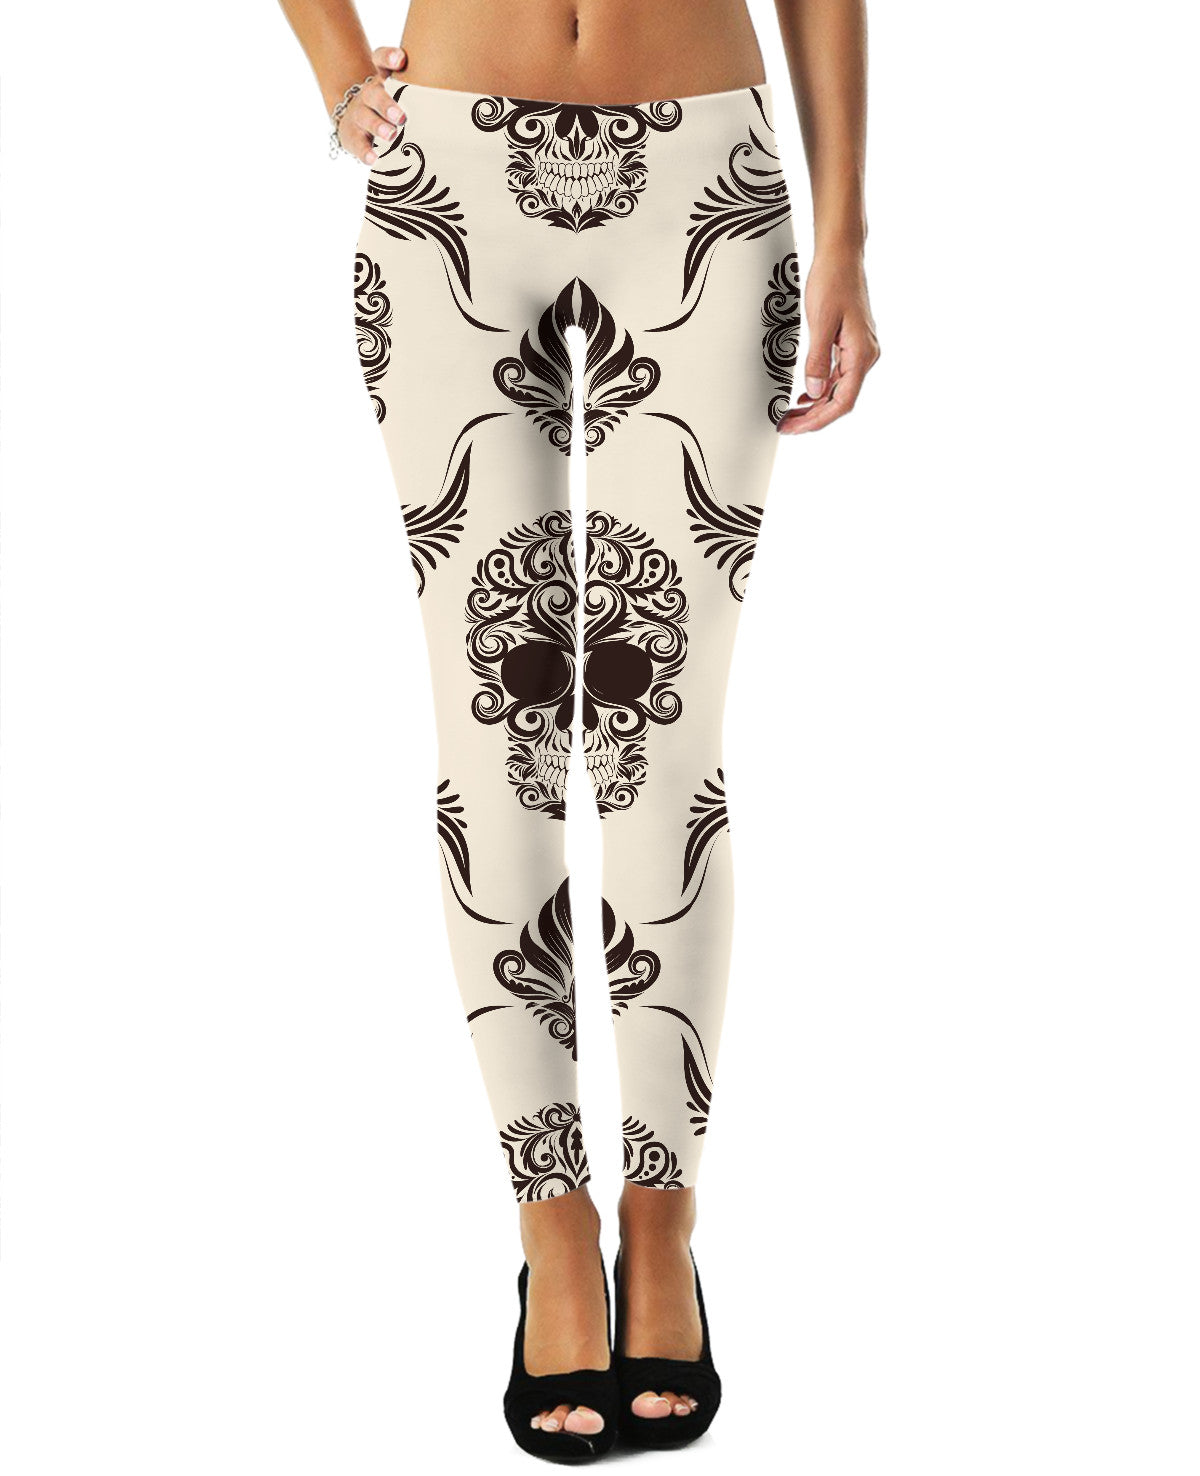 Skull and Flourishes Leggings